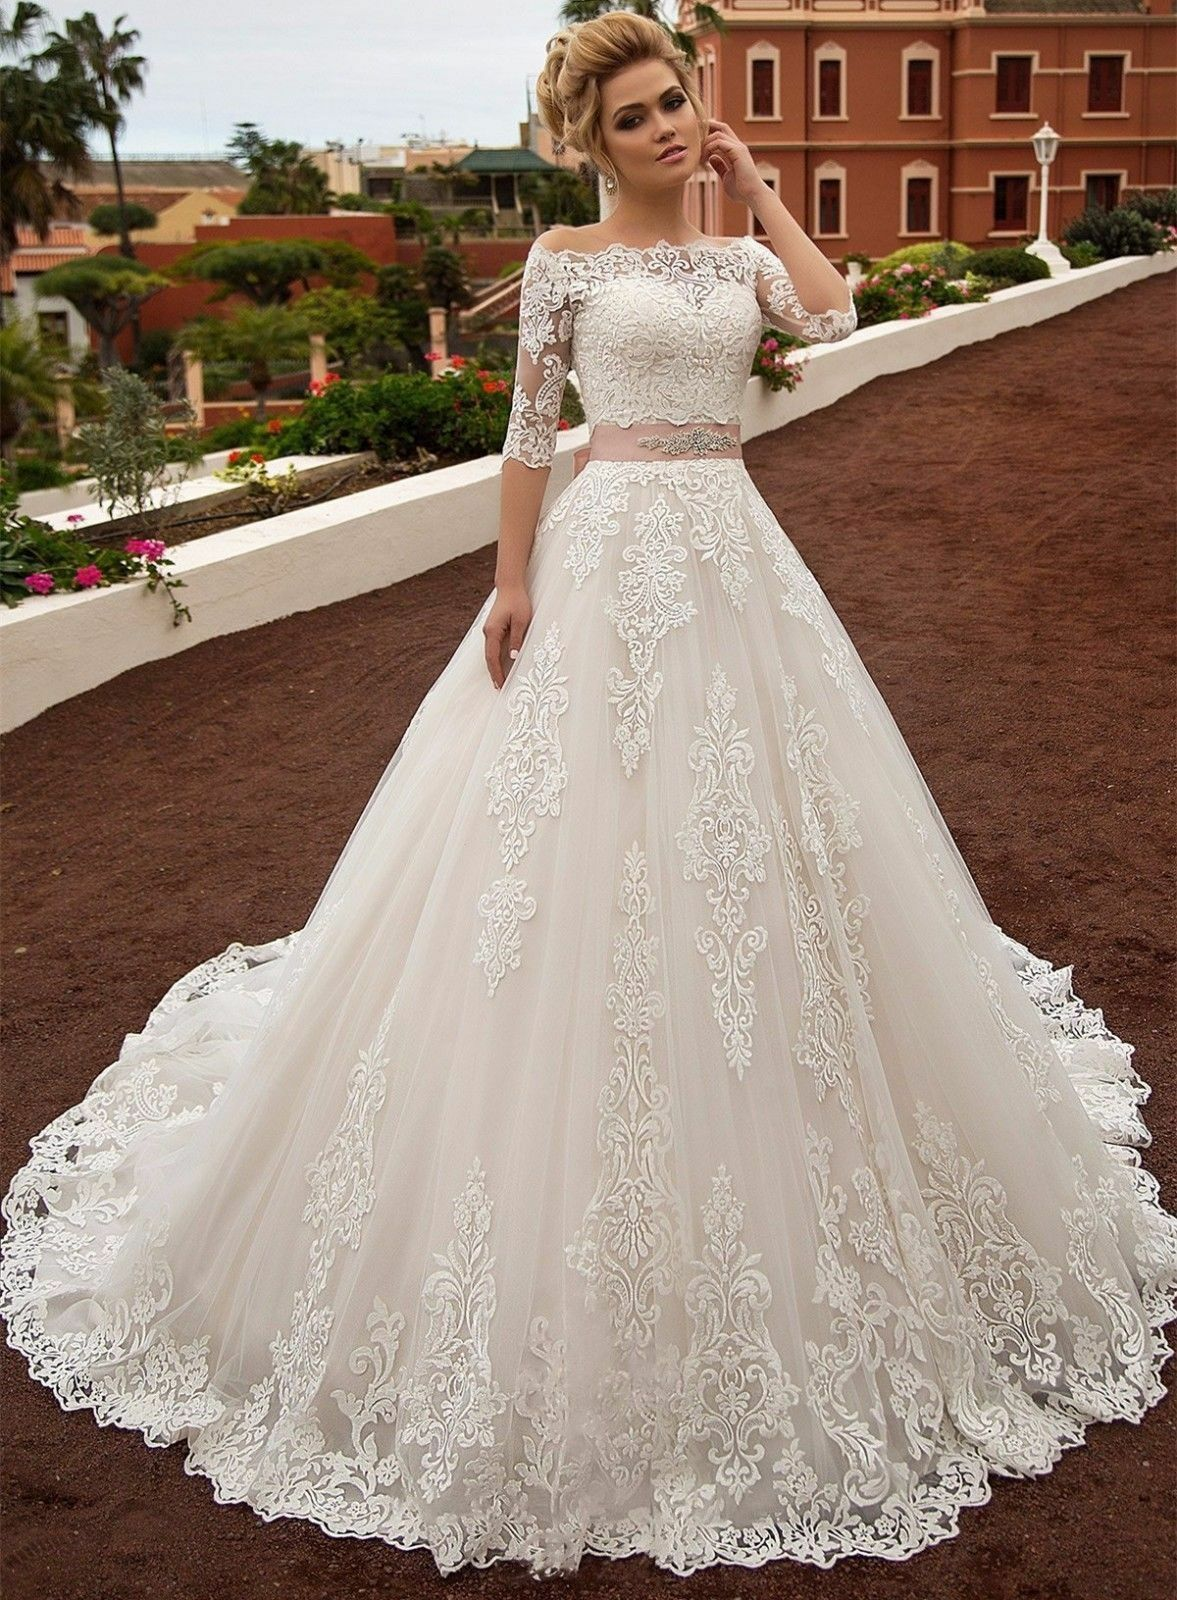 Hot Sweetheart A-Line Tulle Lace Wedding dresses Pink Ribbon Sash Bridal Gown